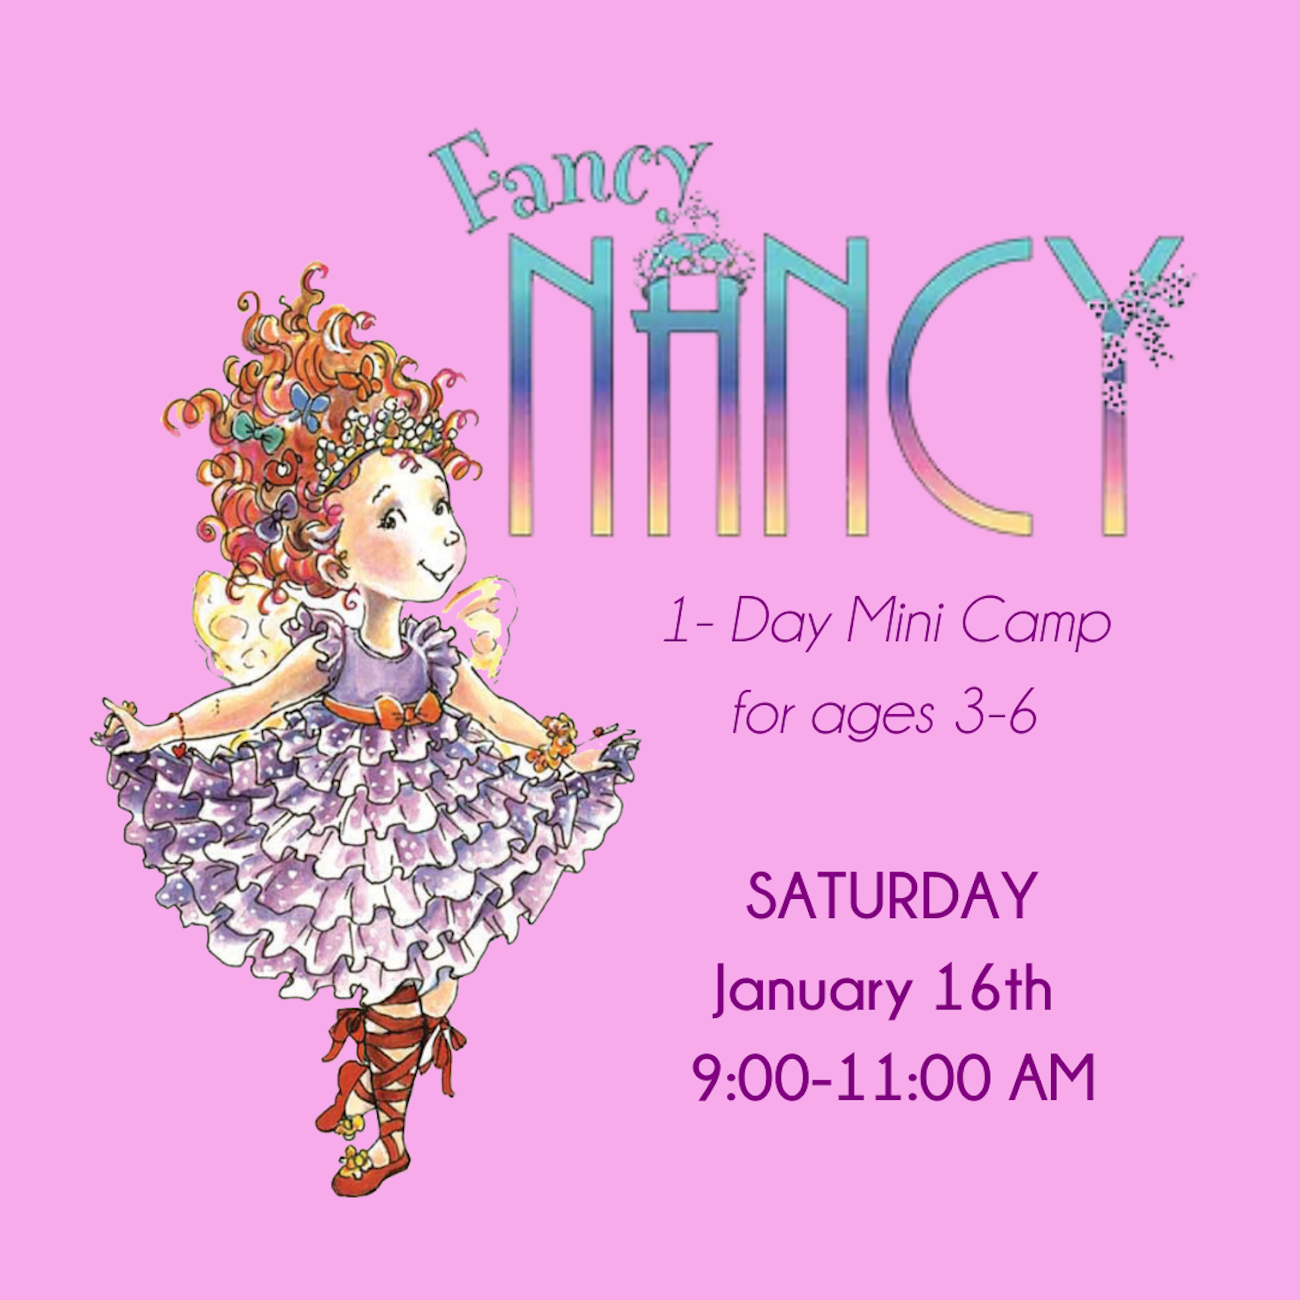 Fancy Nancy Camp